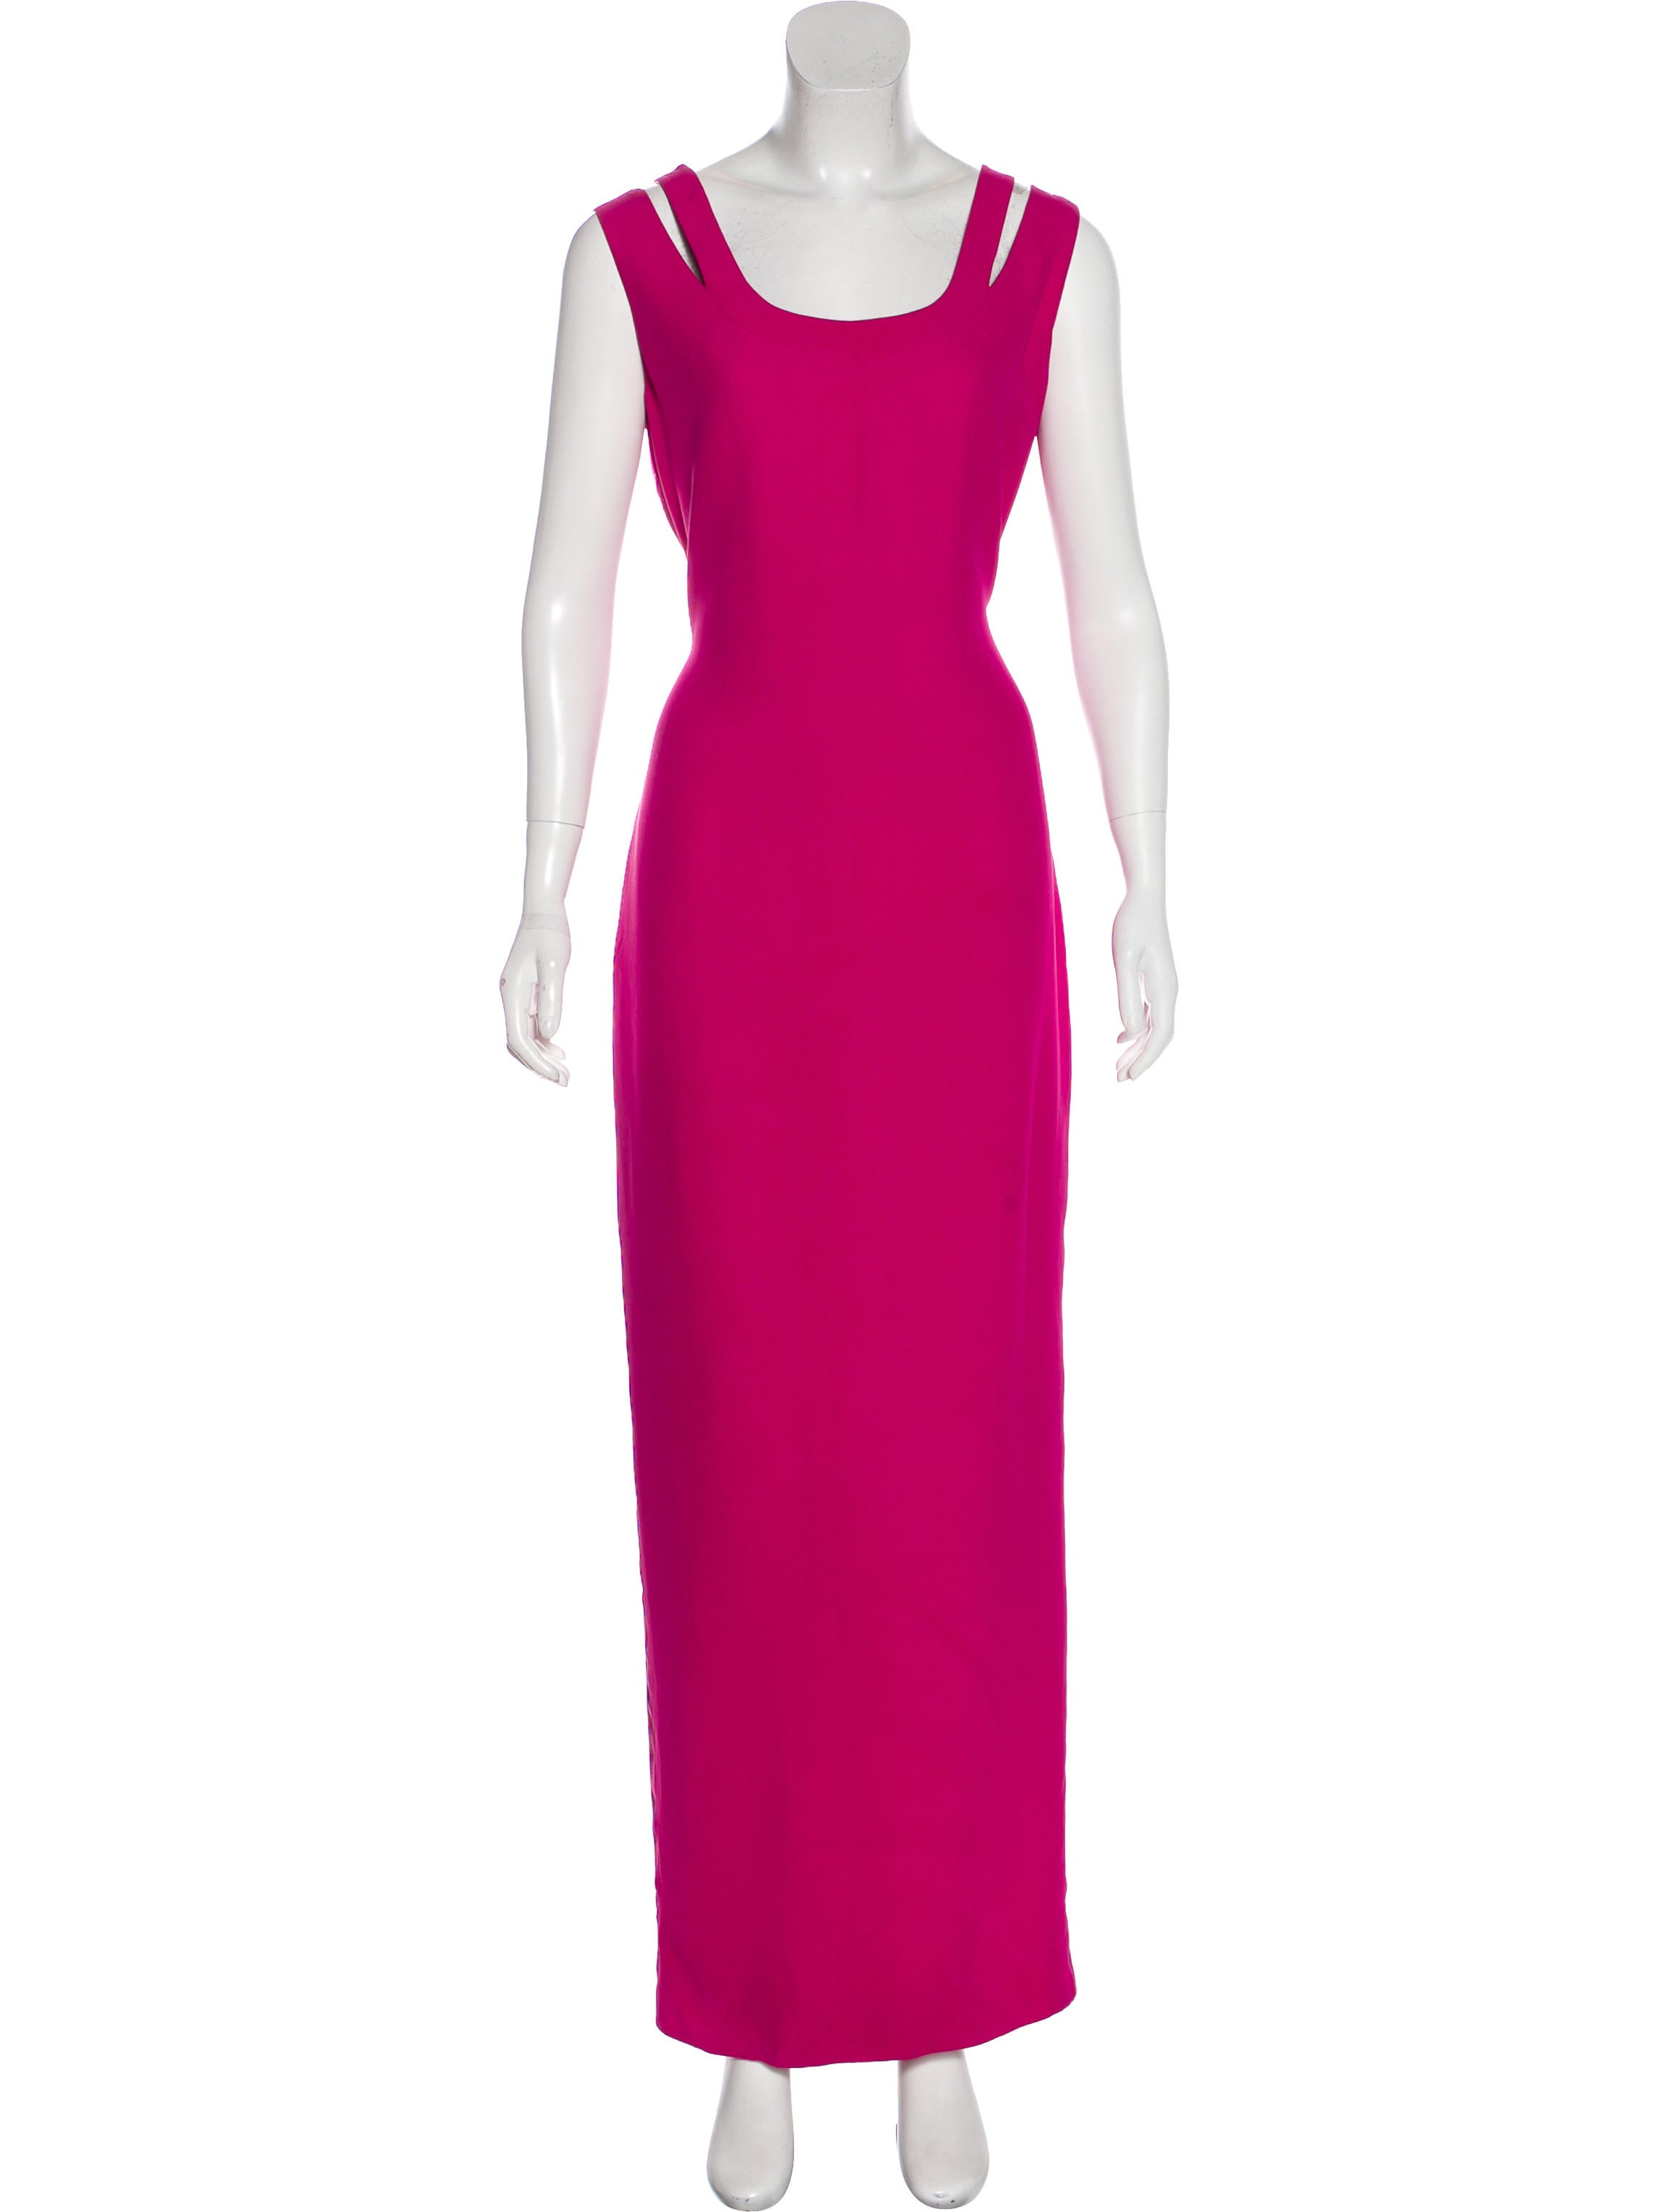 Gianni Versace Sleeveless Evening Dress - Clothing - GVE22396 | The ...